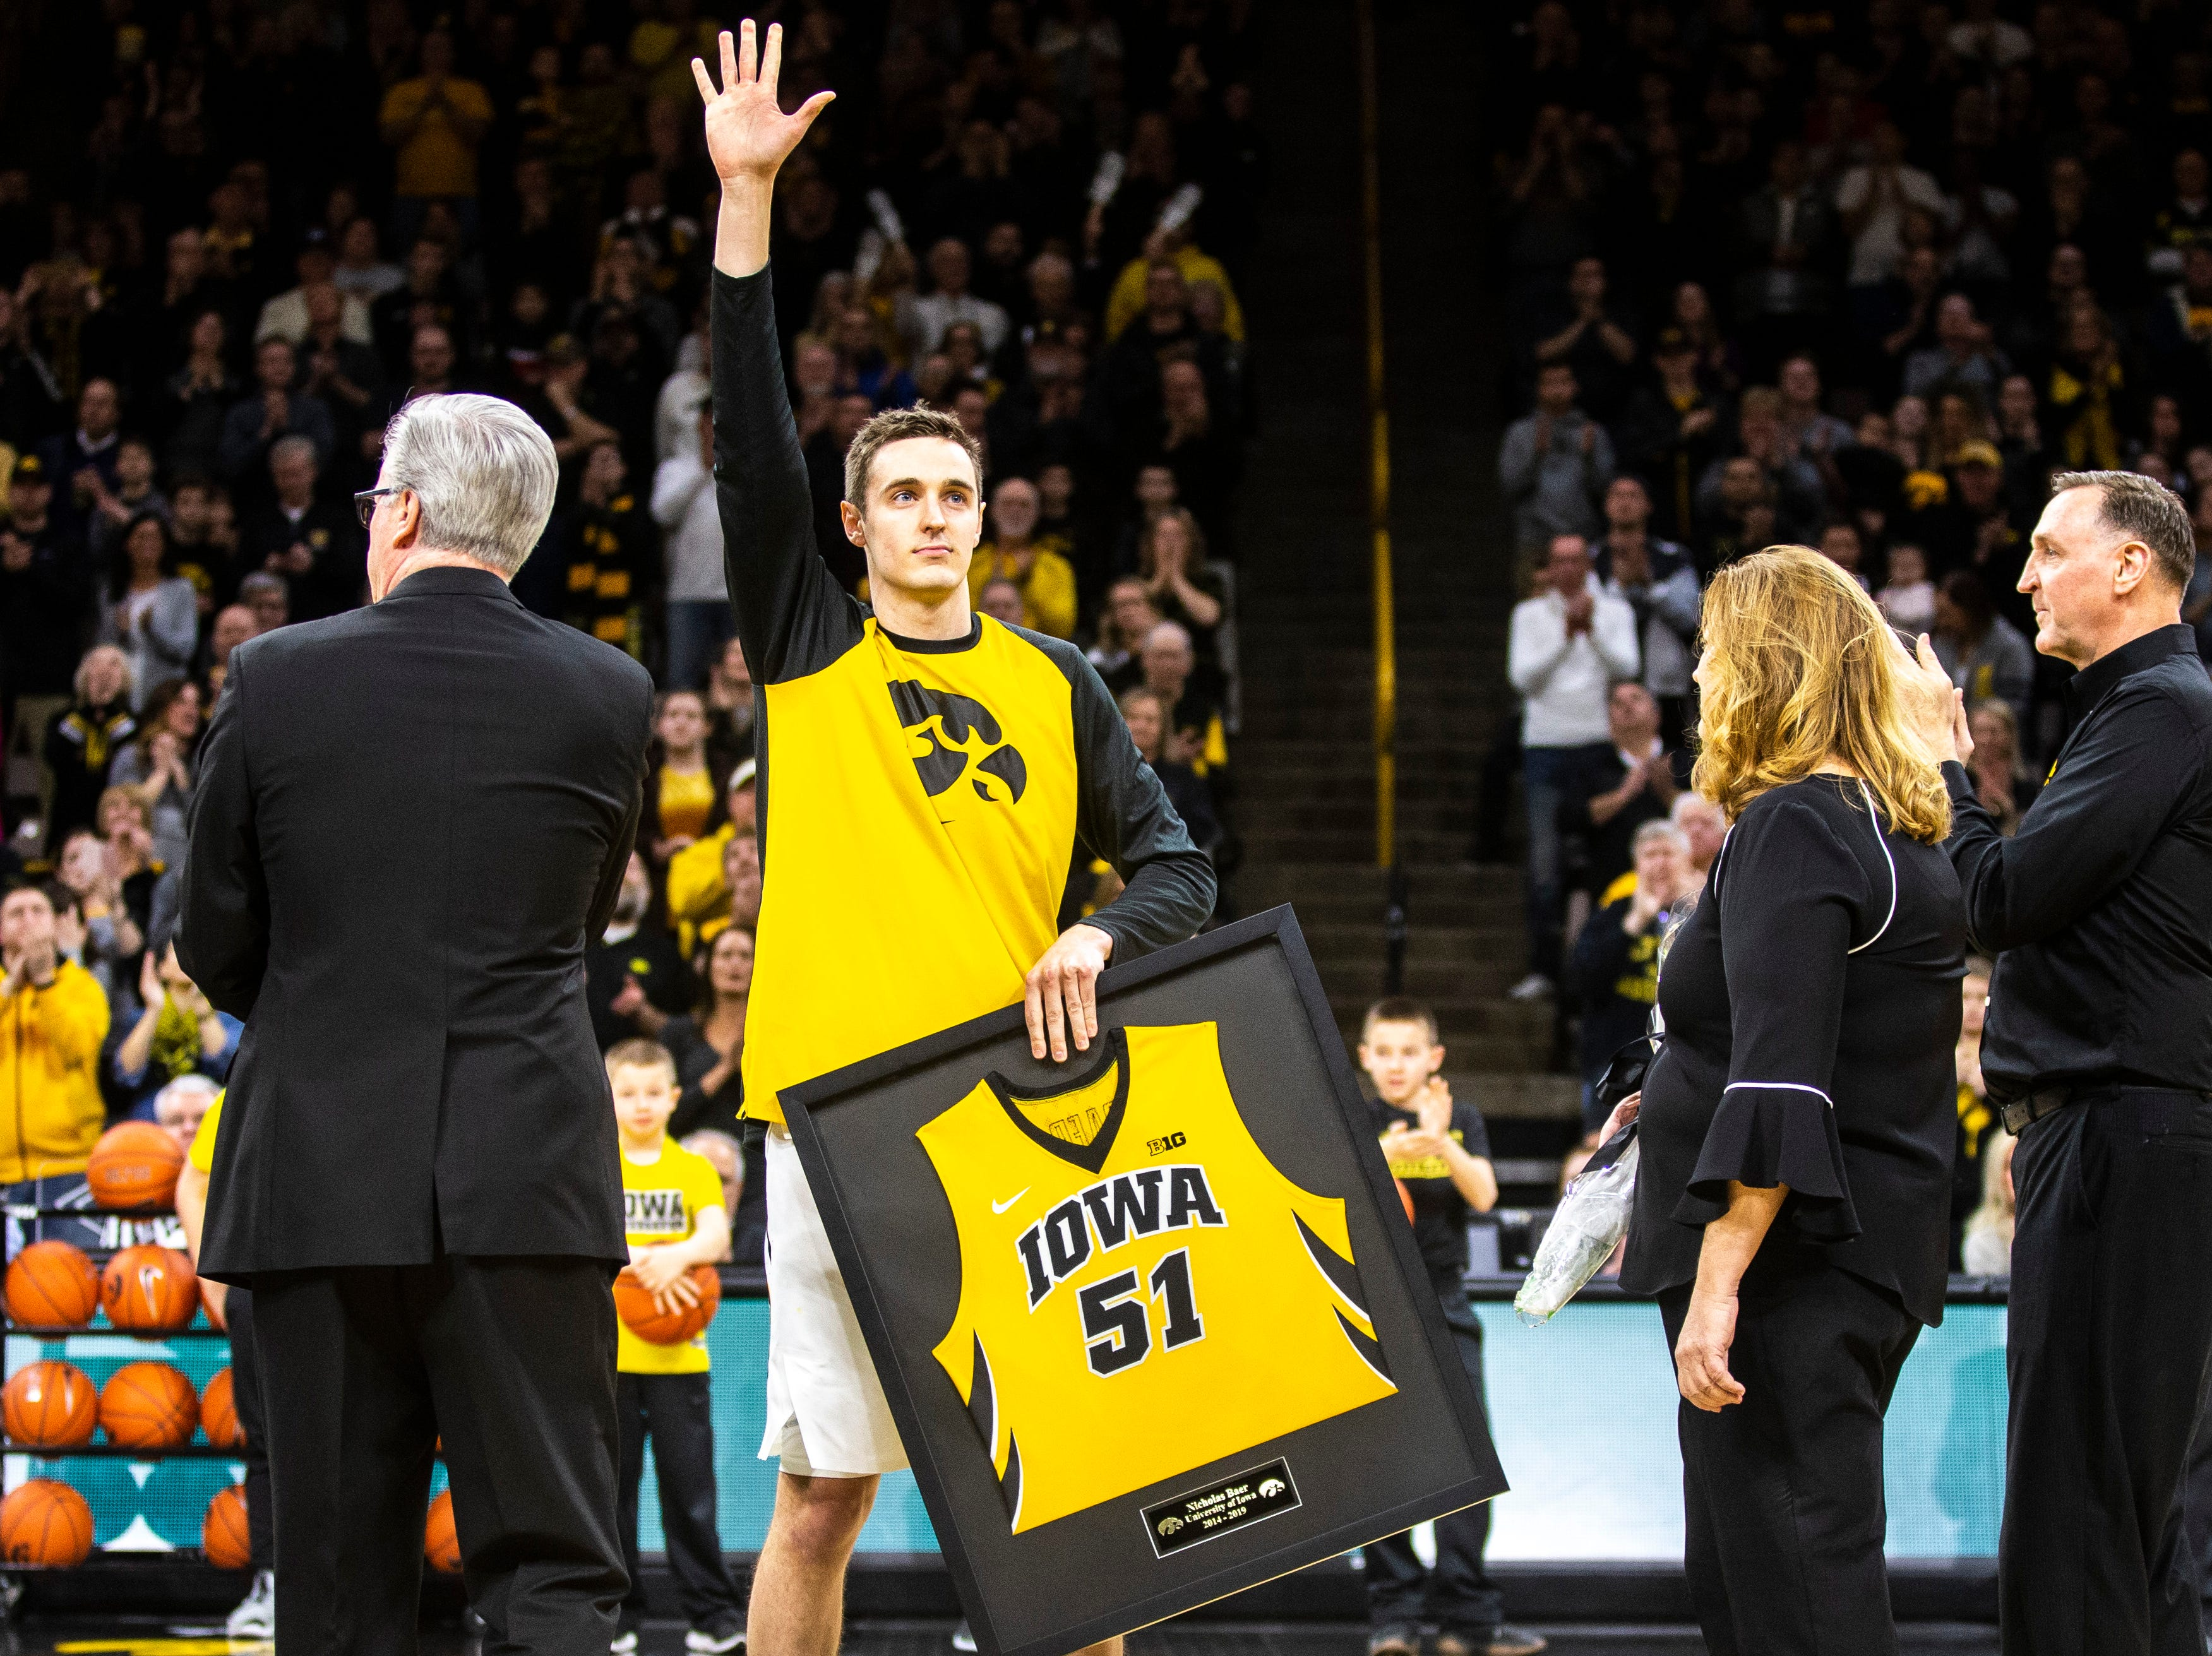 Iowa forward Nicholas Baer (51) waves to fans while holding his framed jersey following senior day activities during a NCAA Big Ten Conference men's basketball game on Saturday, March 2, 2019, at Carver-Hawkeye Arena in Iowa City, Iowa.